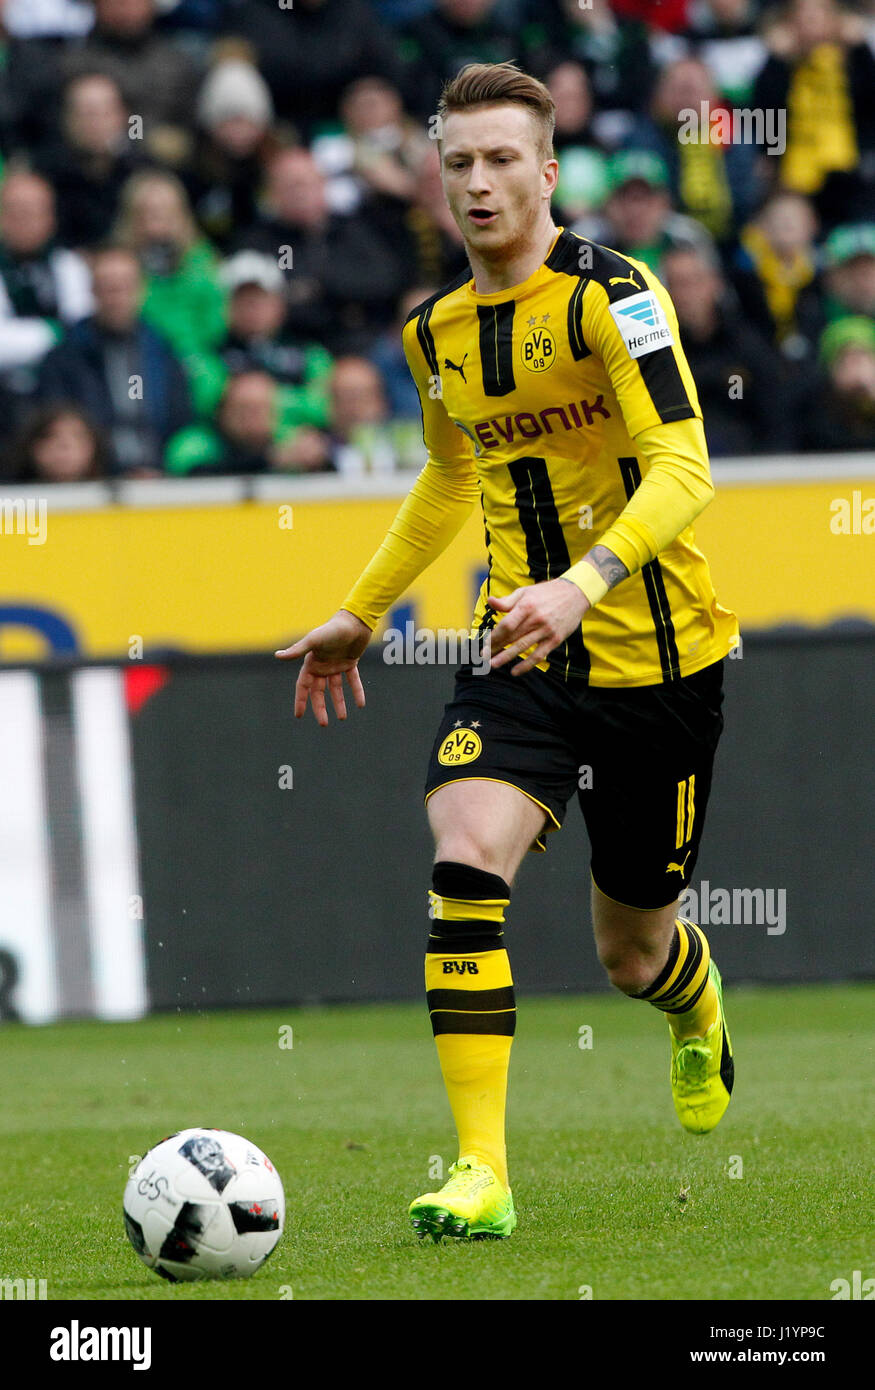 Moenchengladbach Germany 22nd Apr 2017 Dortmund s Marco Reus